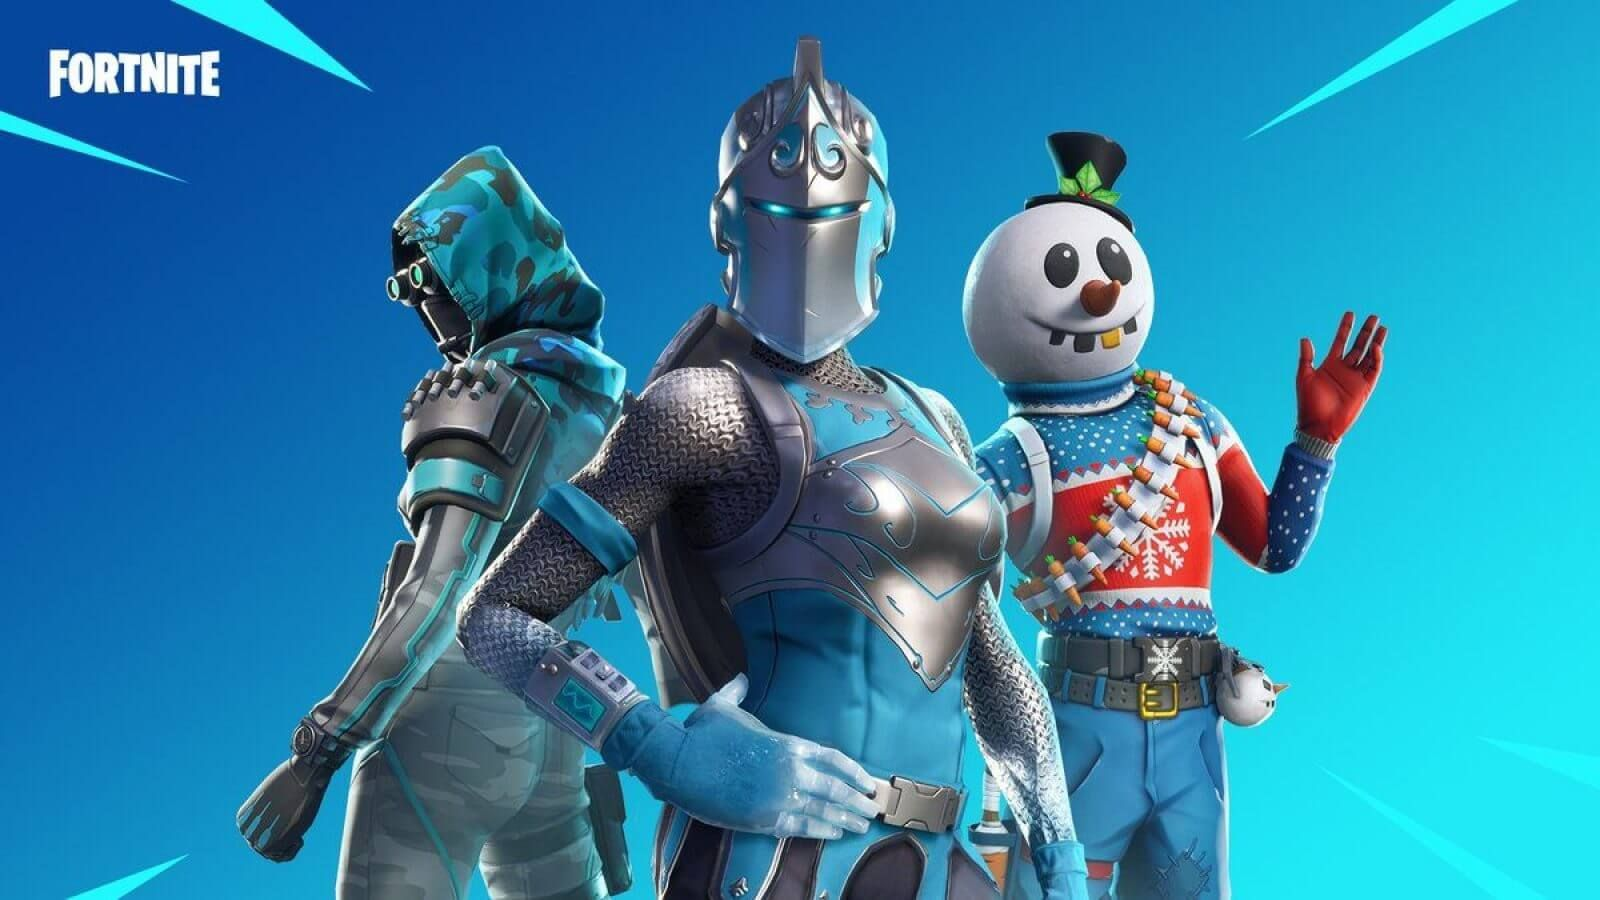 Hintergrundbilder Fortnite Skins Fortnite Account Generator 100